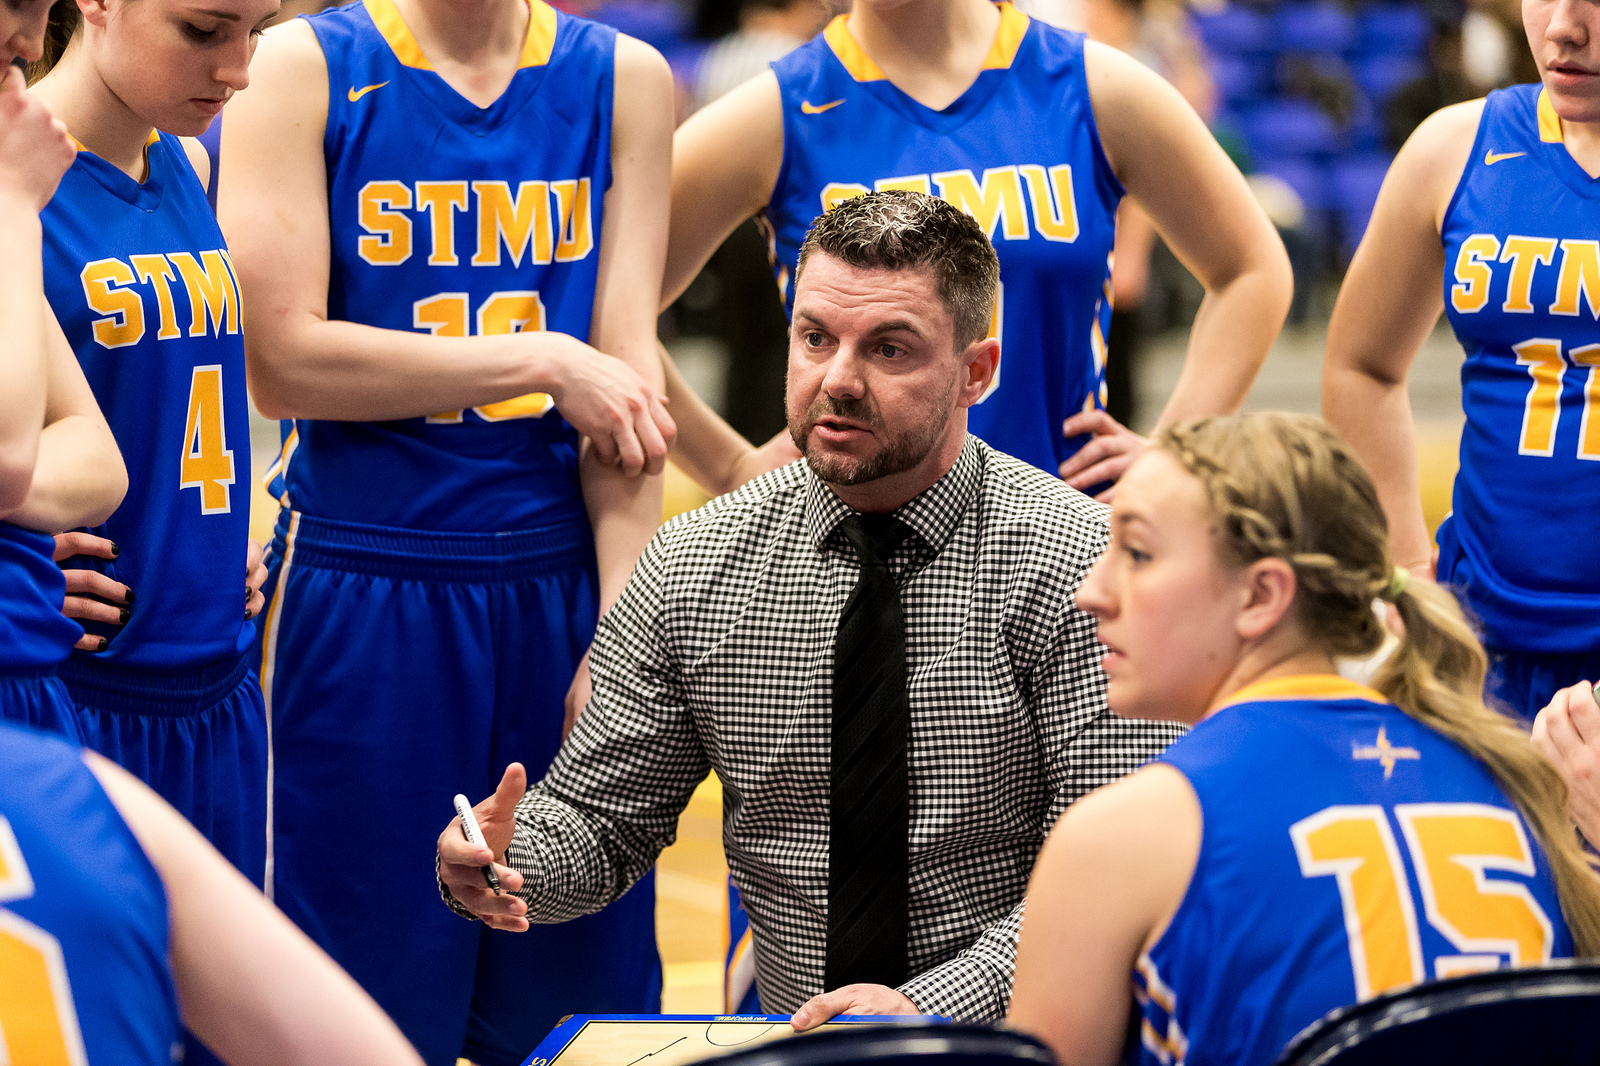 Head coach Steve Shoults goes over plays during a time out called at the 2015 ACAC Women's Basketball Championships at NAIT March 3-6